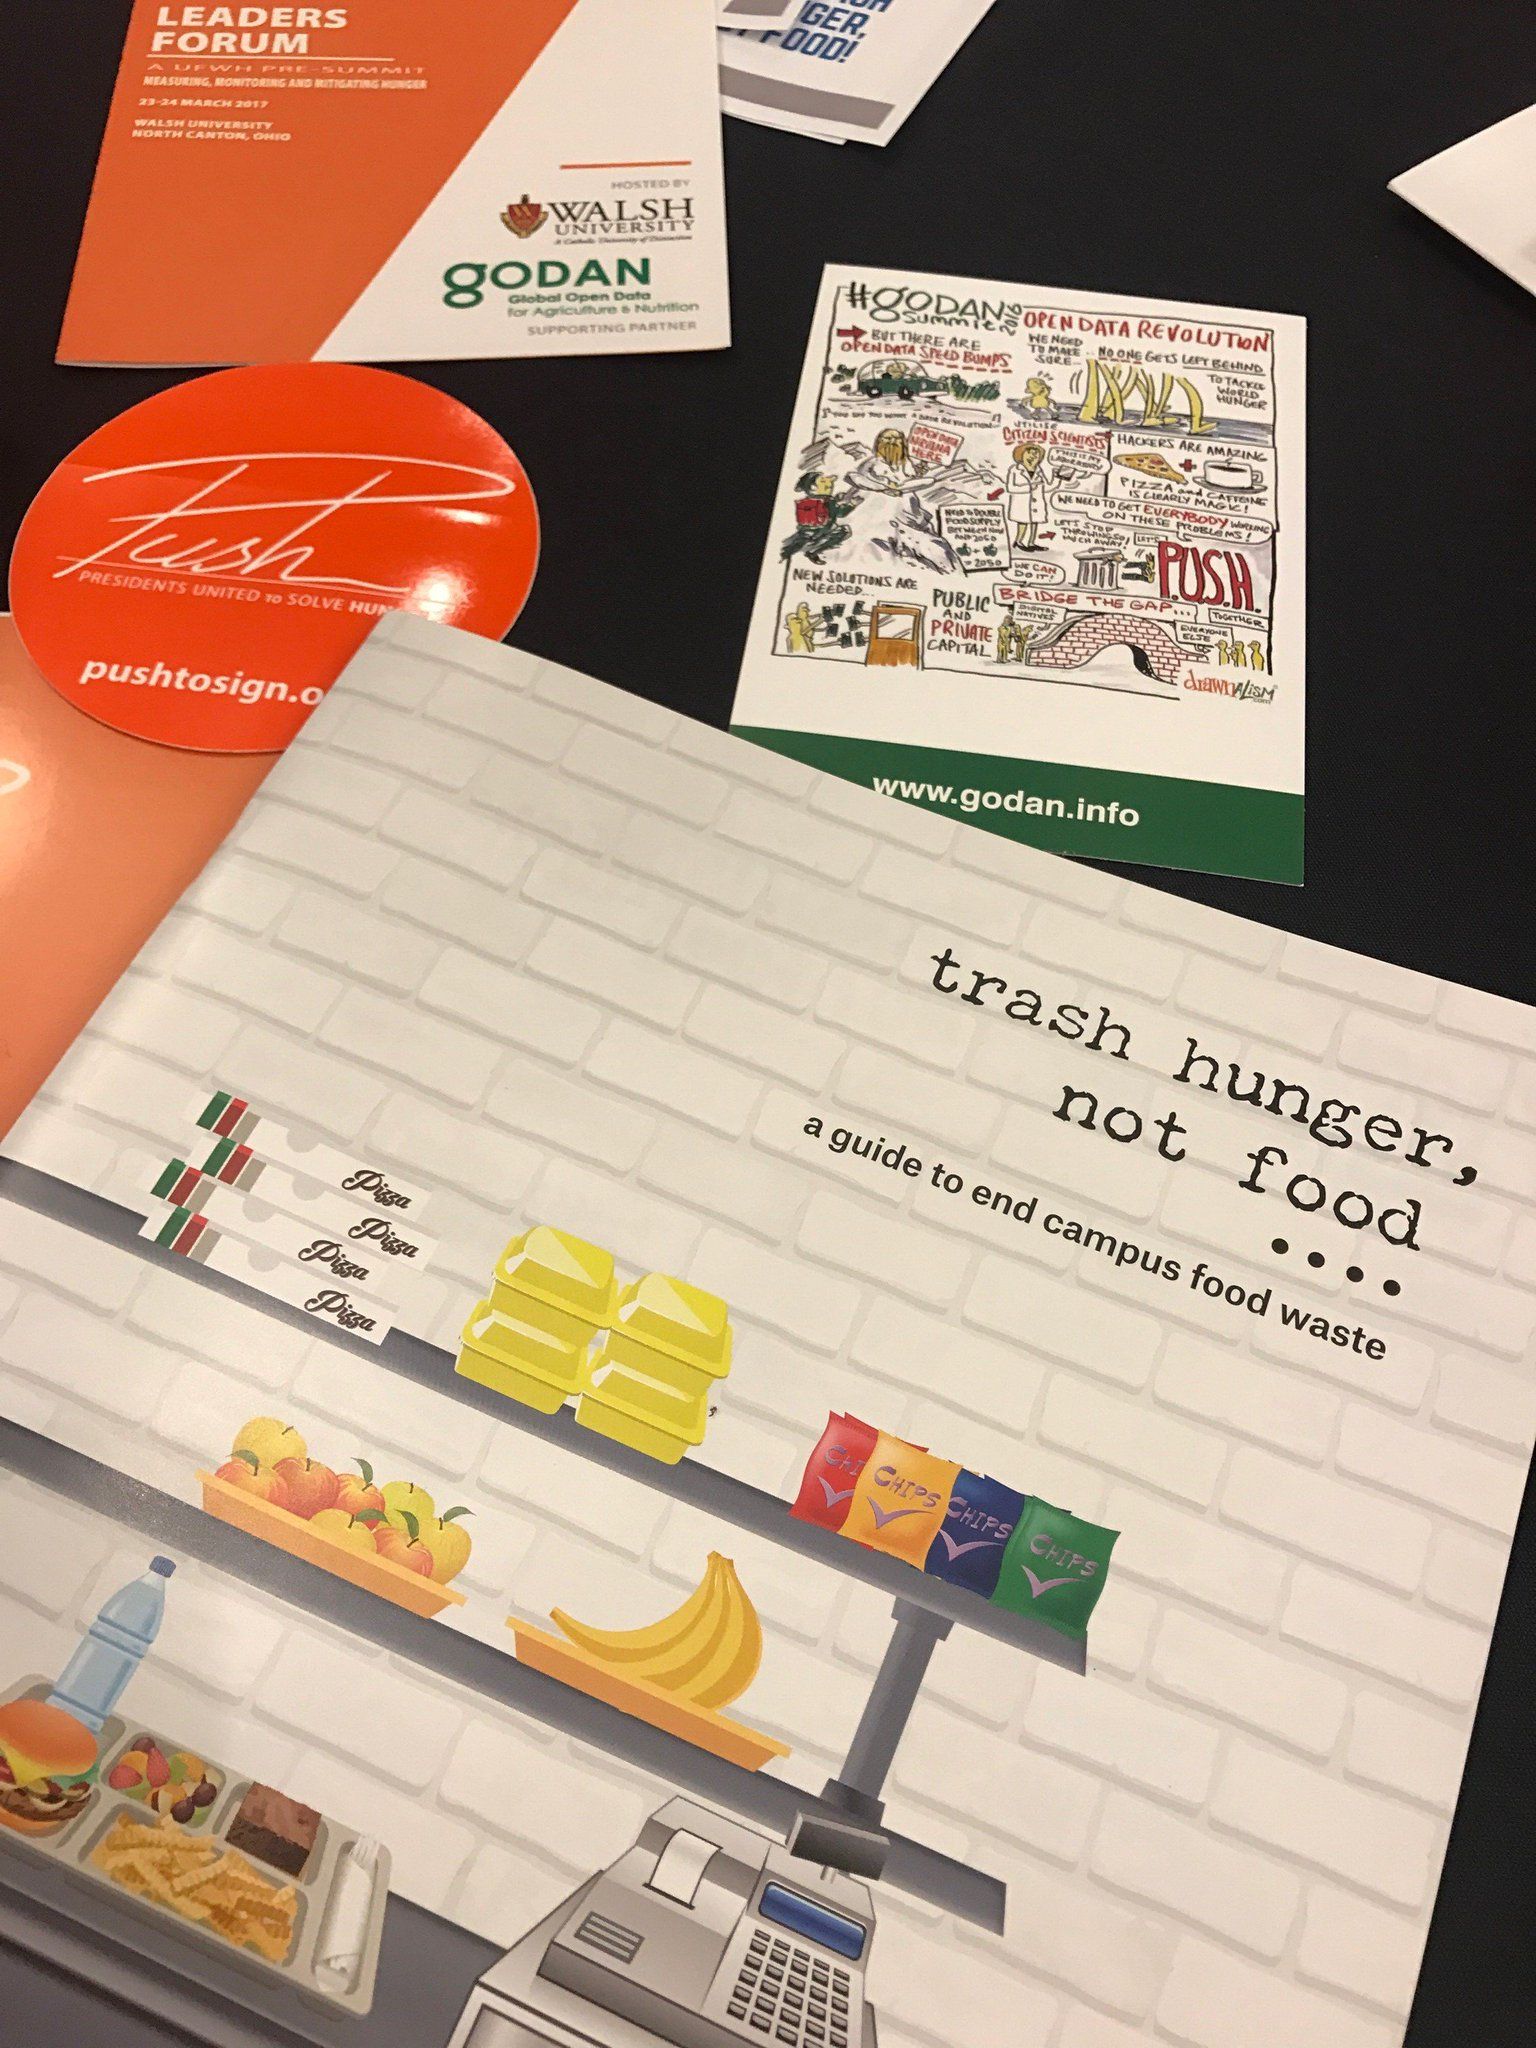 #SummitSquared at @WalshUniversity today+tmrw. Students leading fight against #foodwaste on campuses w/ new #TrashHungerNotFood toolkit! https://t.co/2eNyVnLM3w